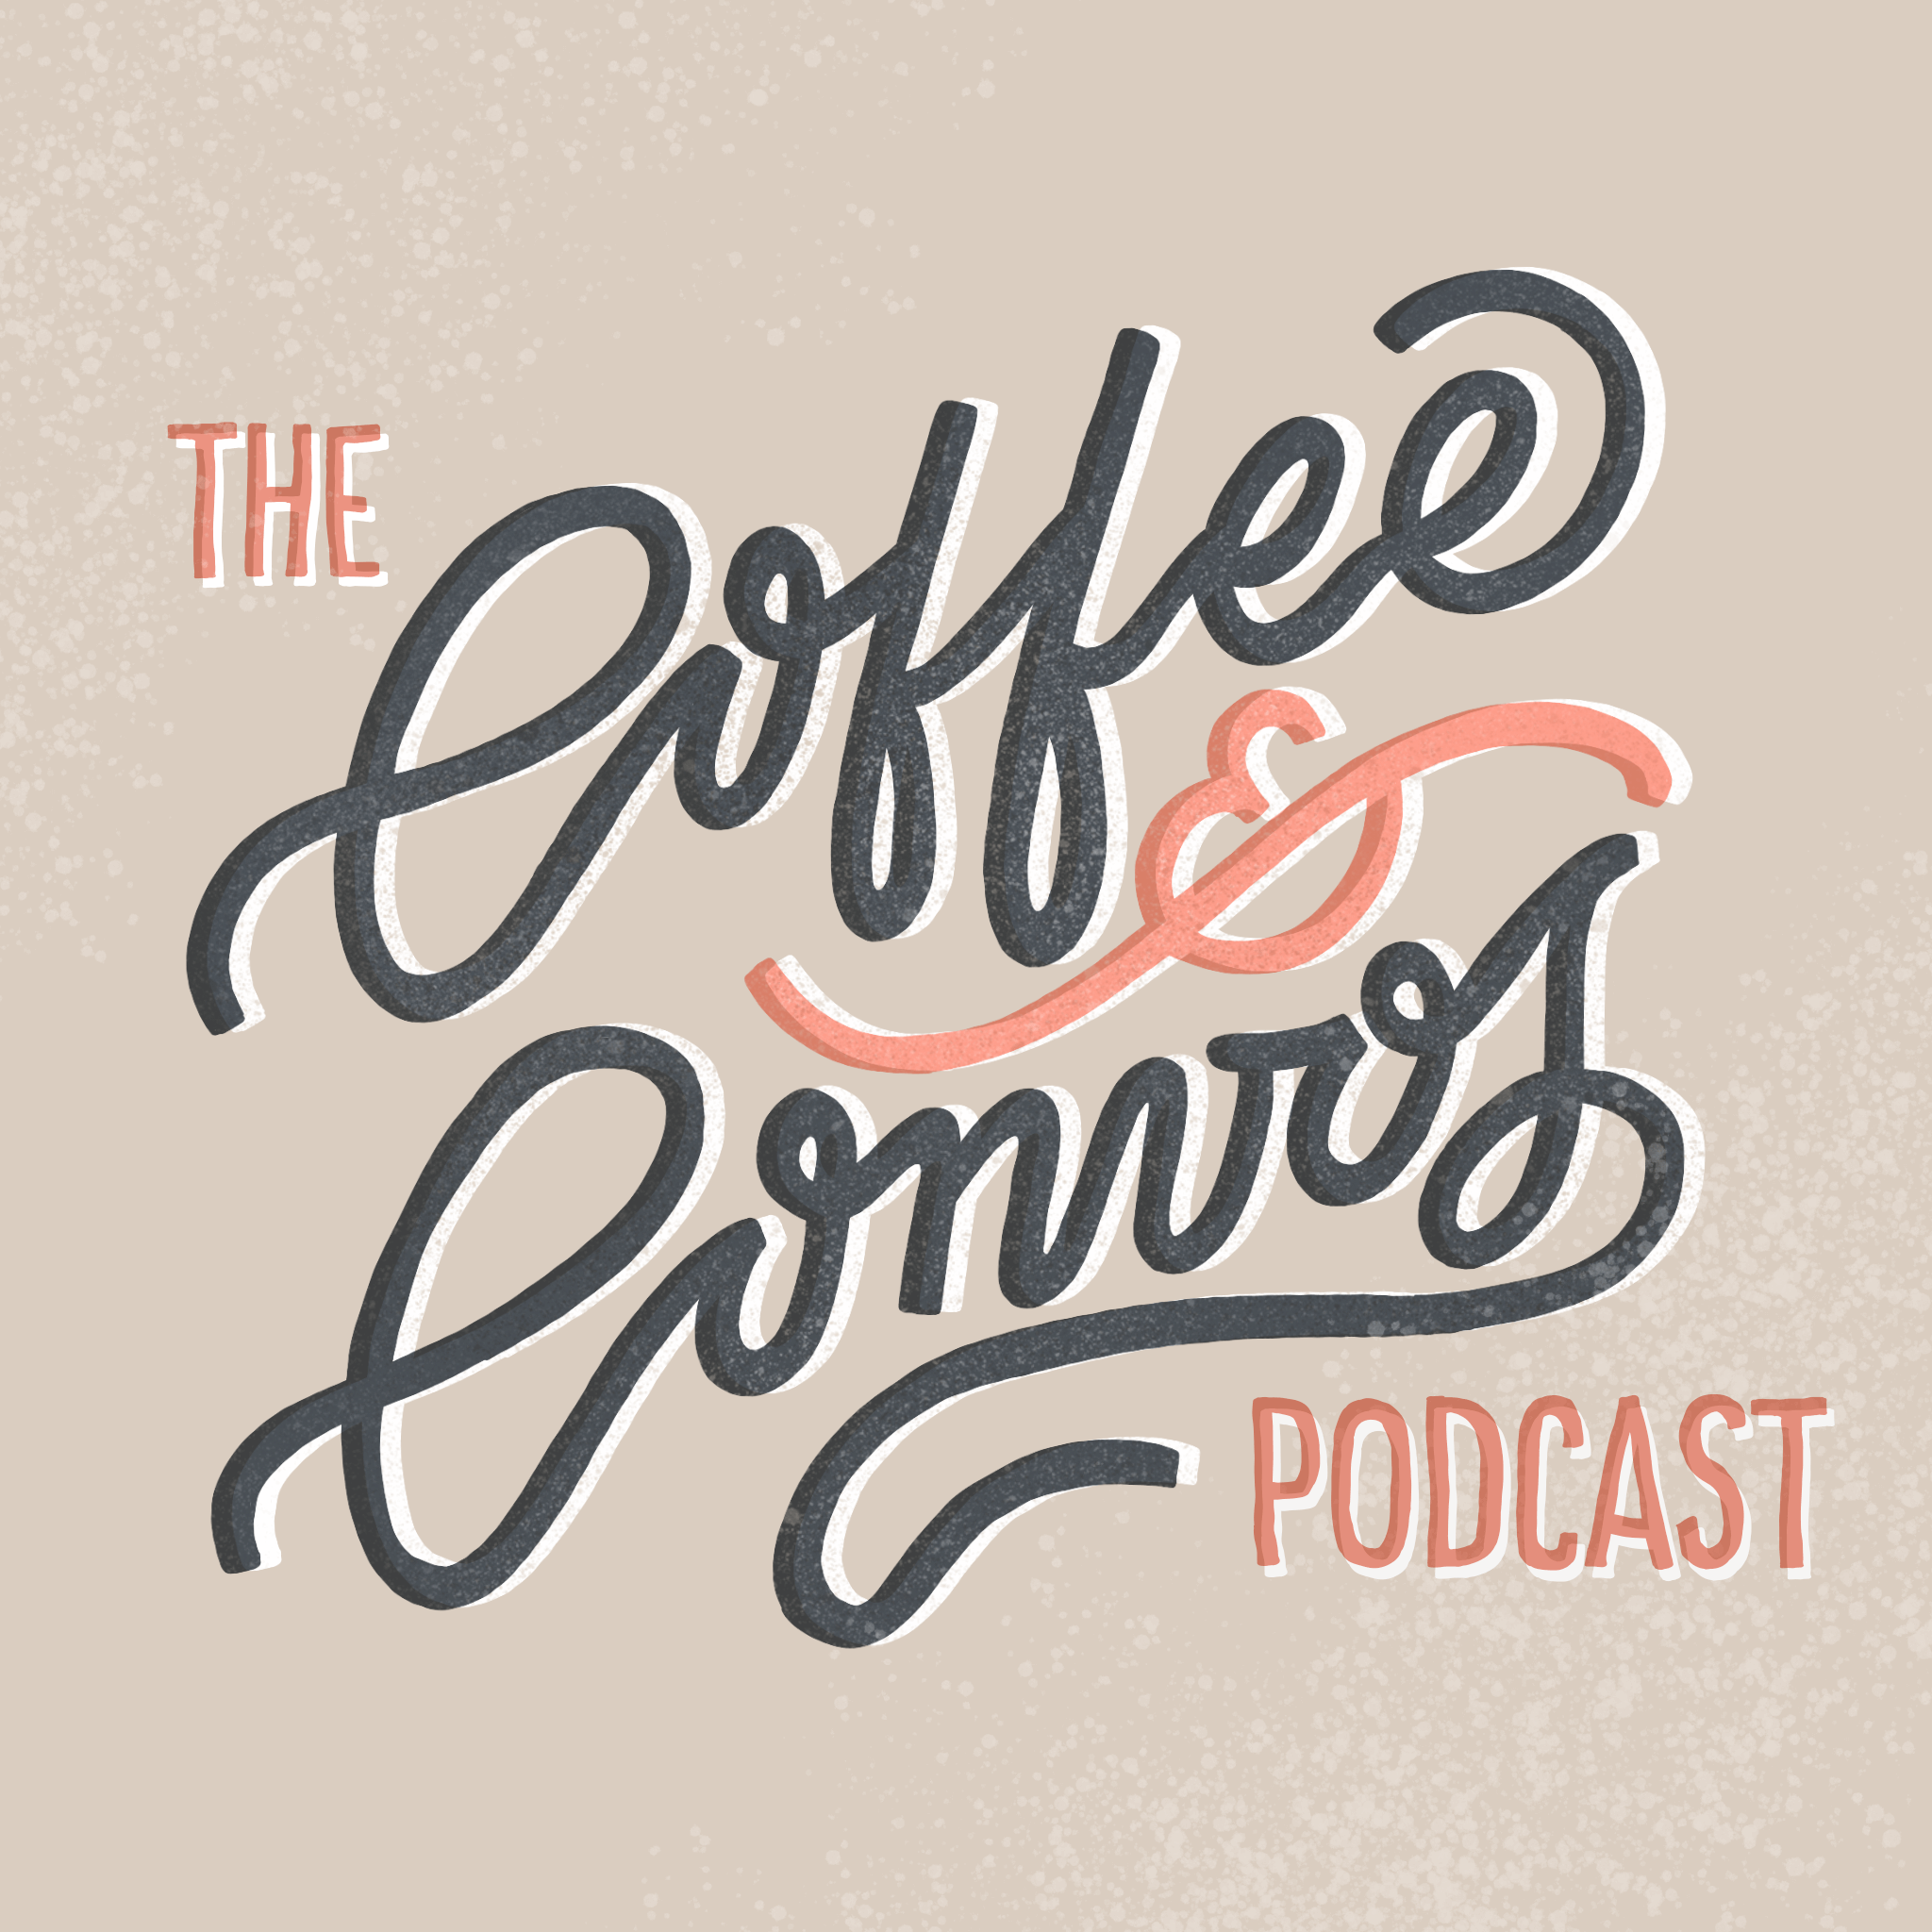 The Coffee & Convos Podcast